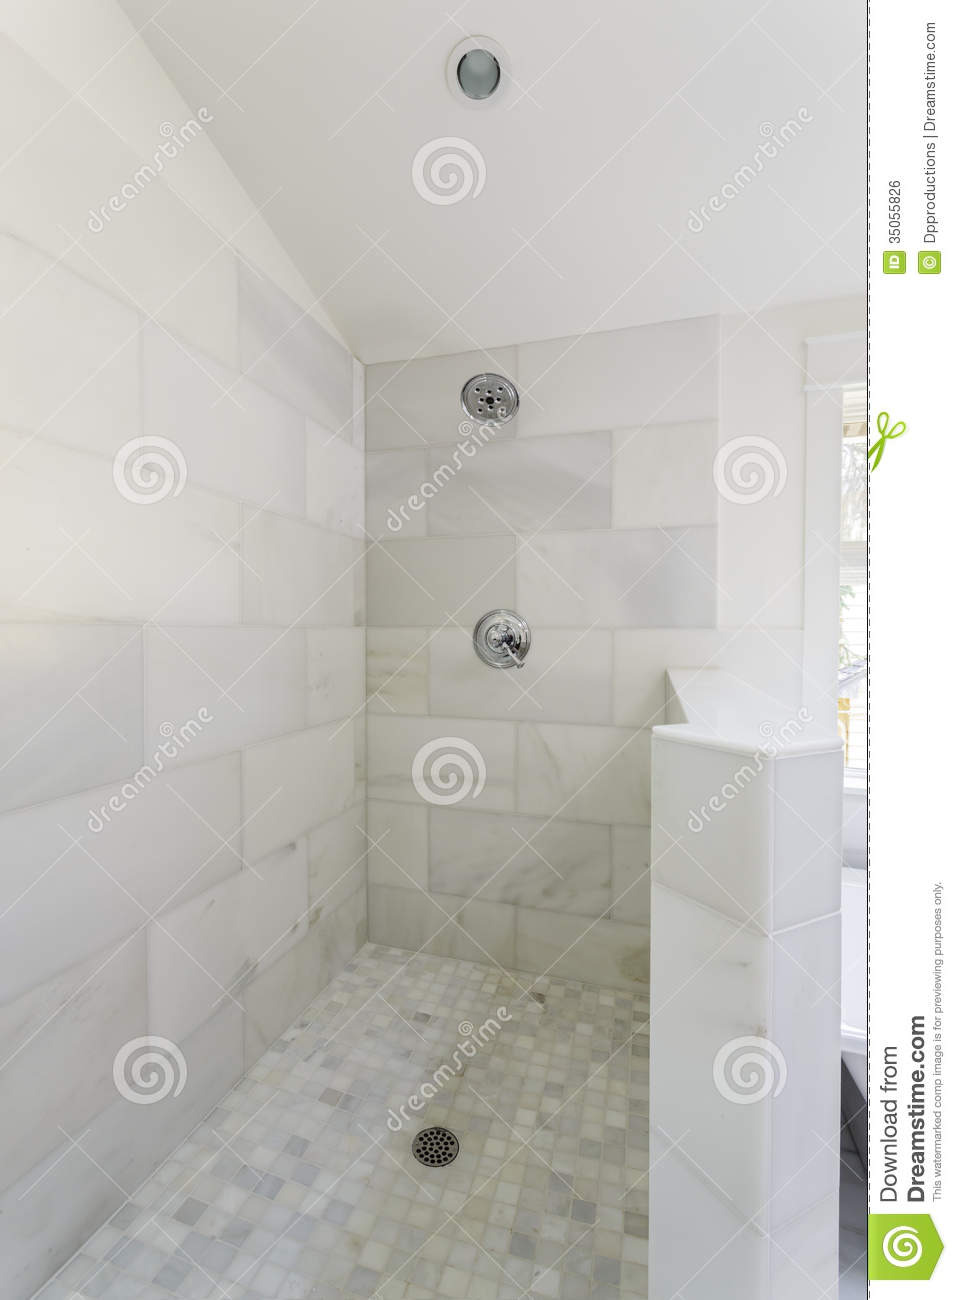 modern marble tile walk shower tiled open aired head fixture drain